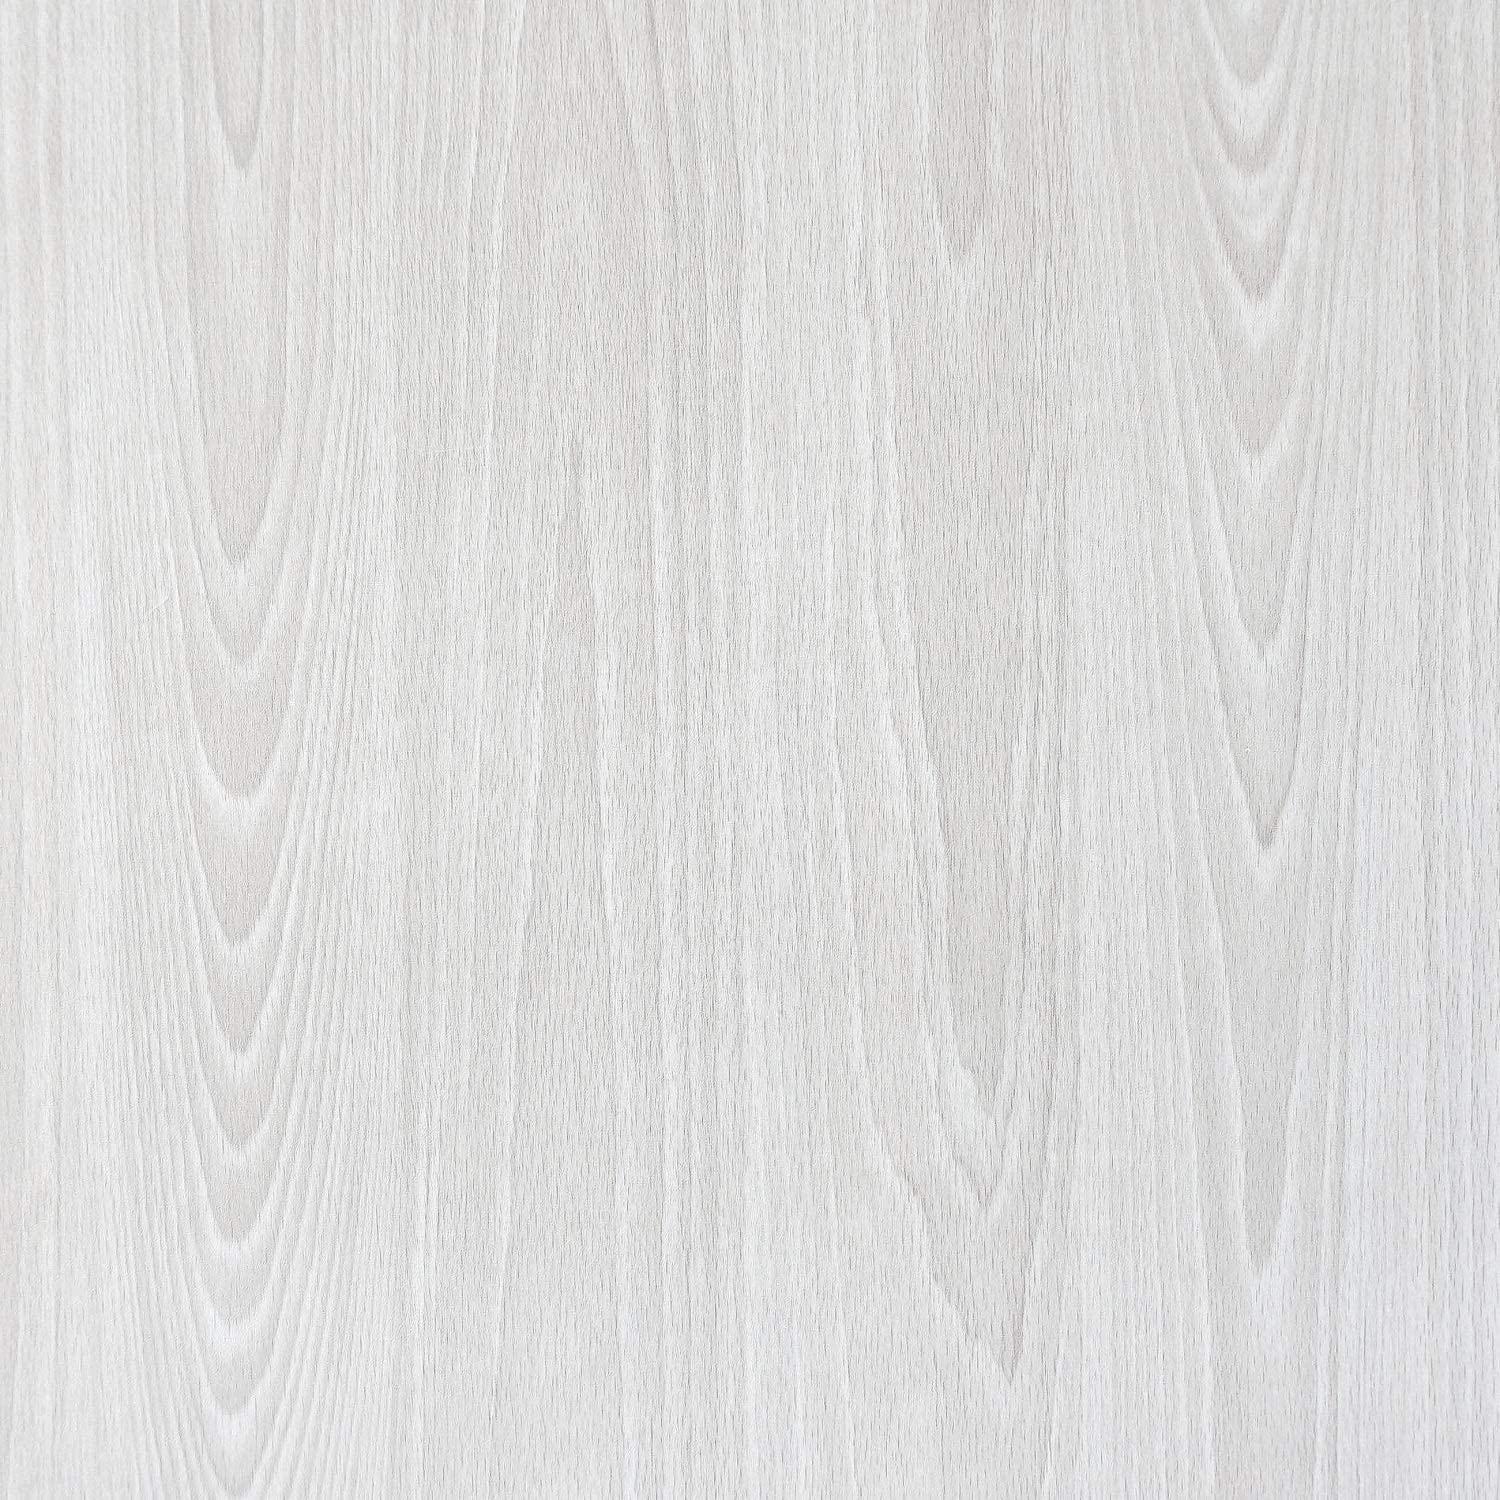 CiCiwind Gray Wood Contact Paper for Limited New popularity price Grain Cabinets Self-Ad